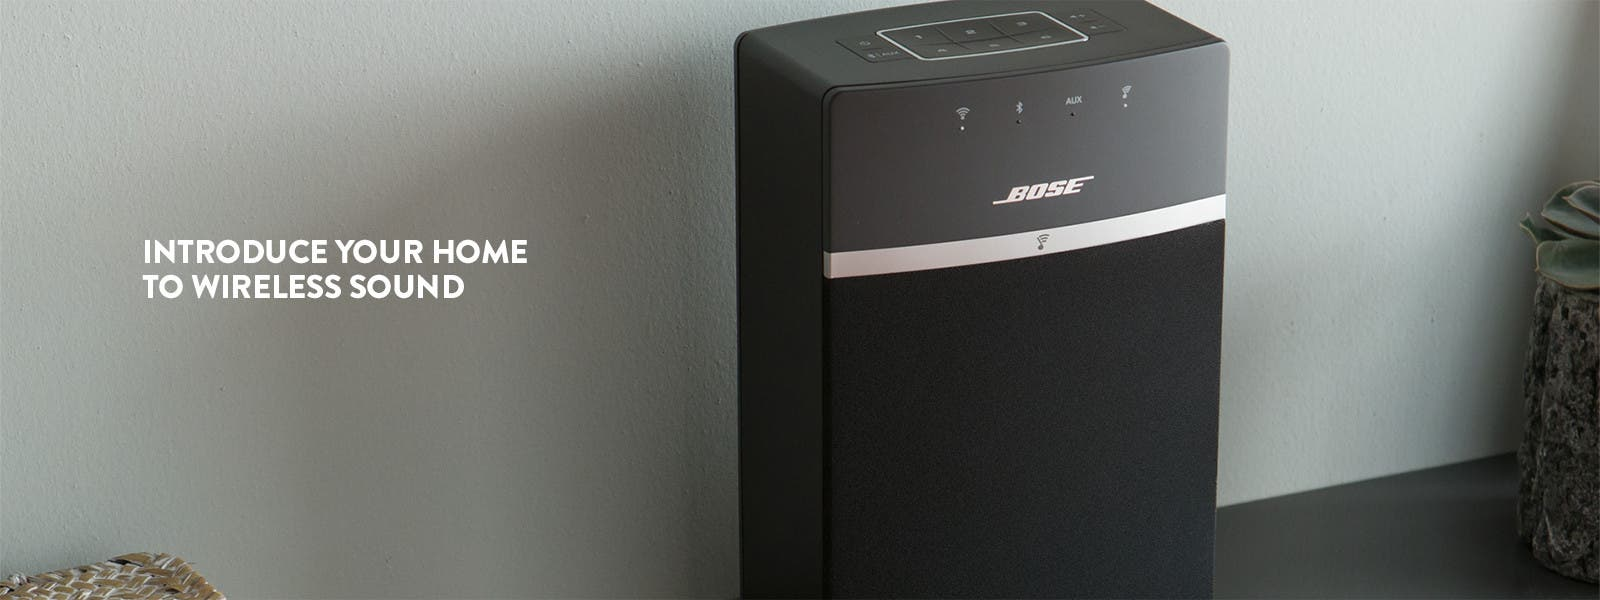 Bose SoundTouch 10 wireless speaker system.